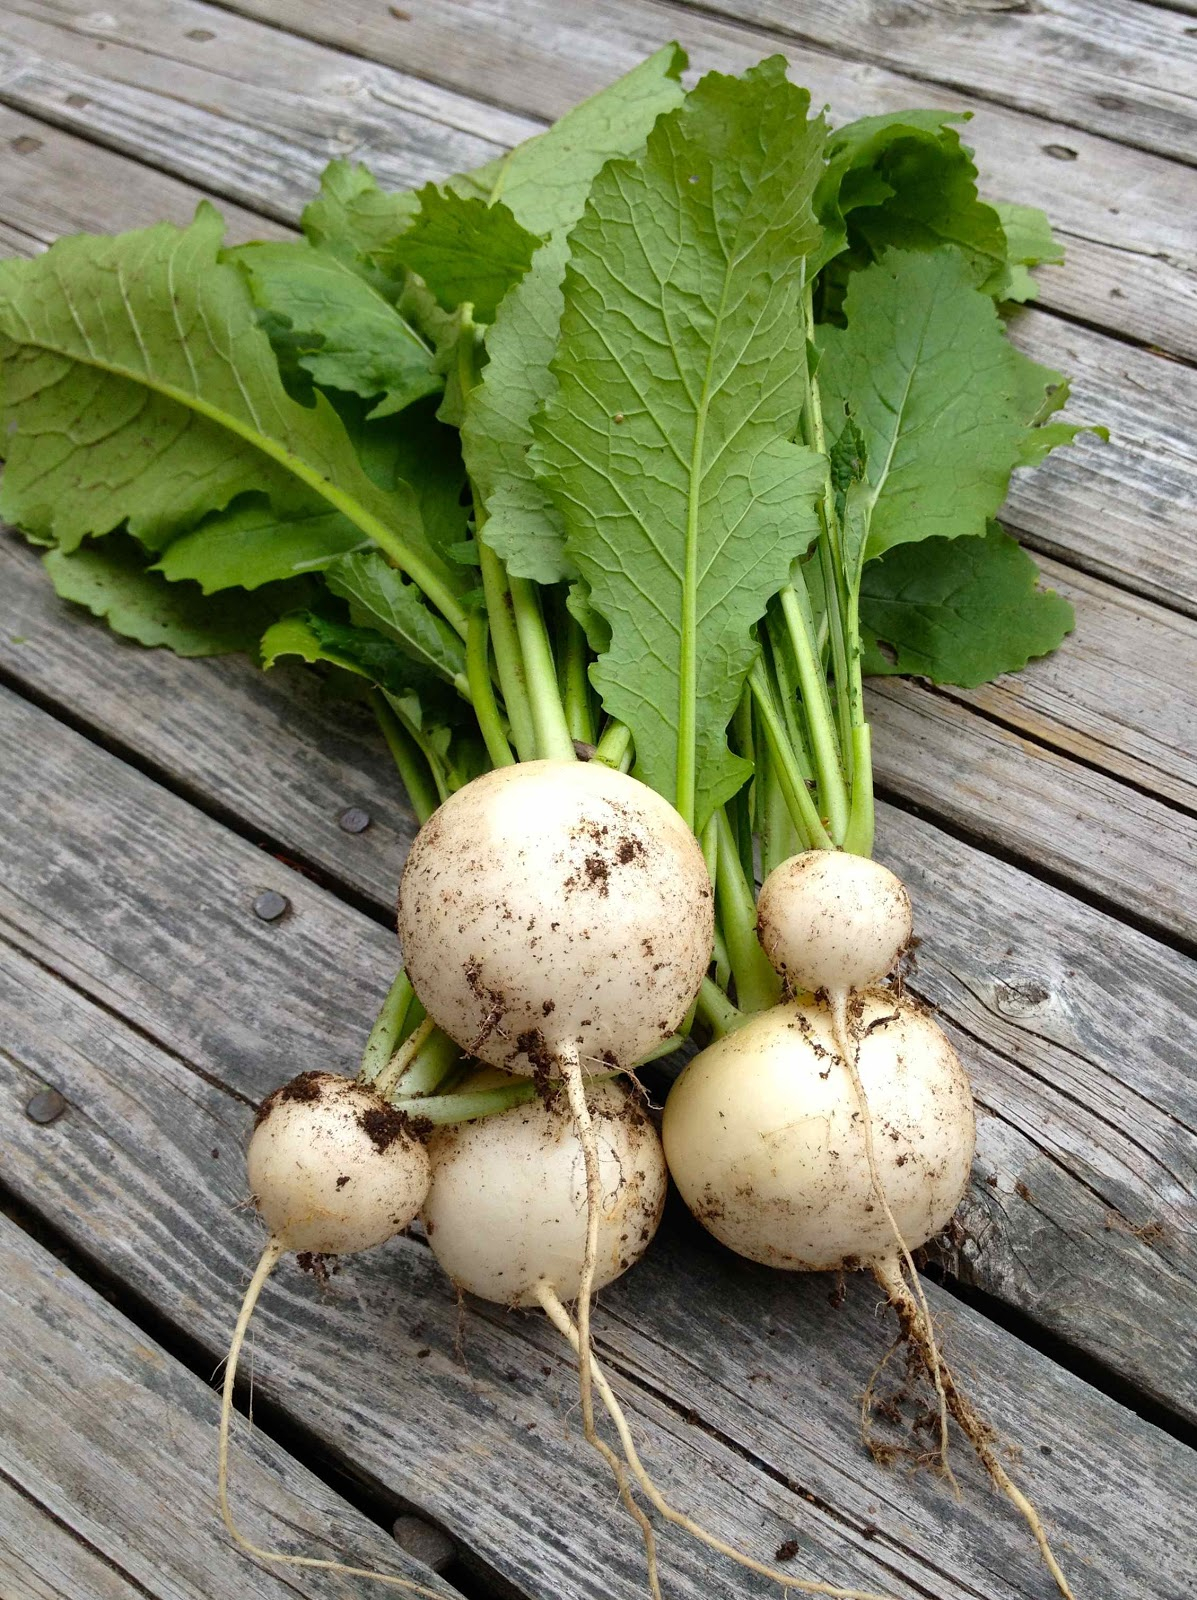 Japanese Turnips, another favourite